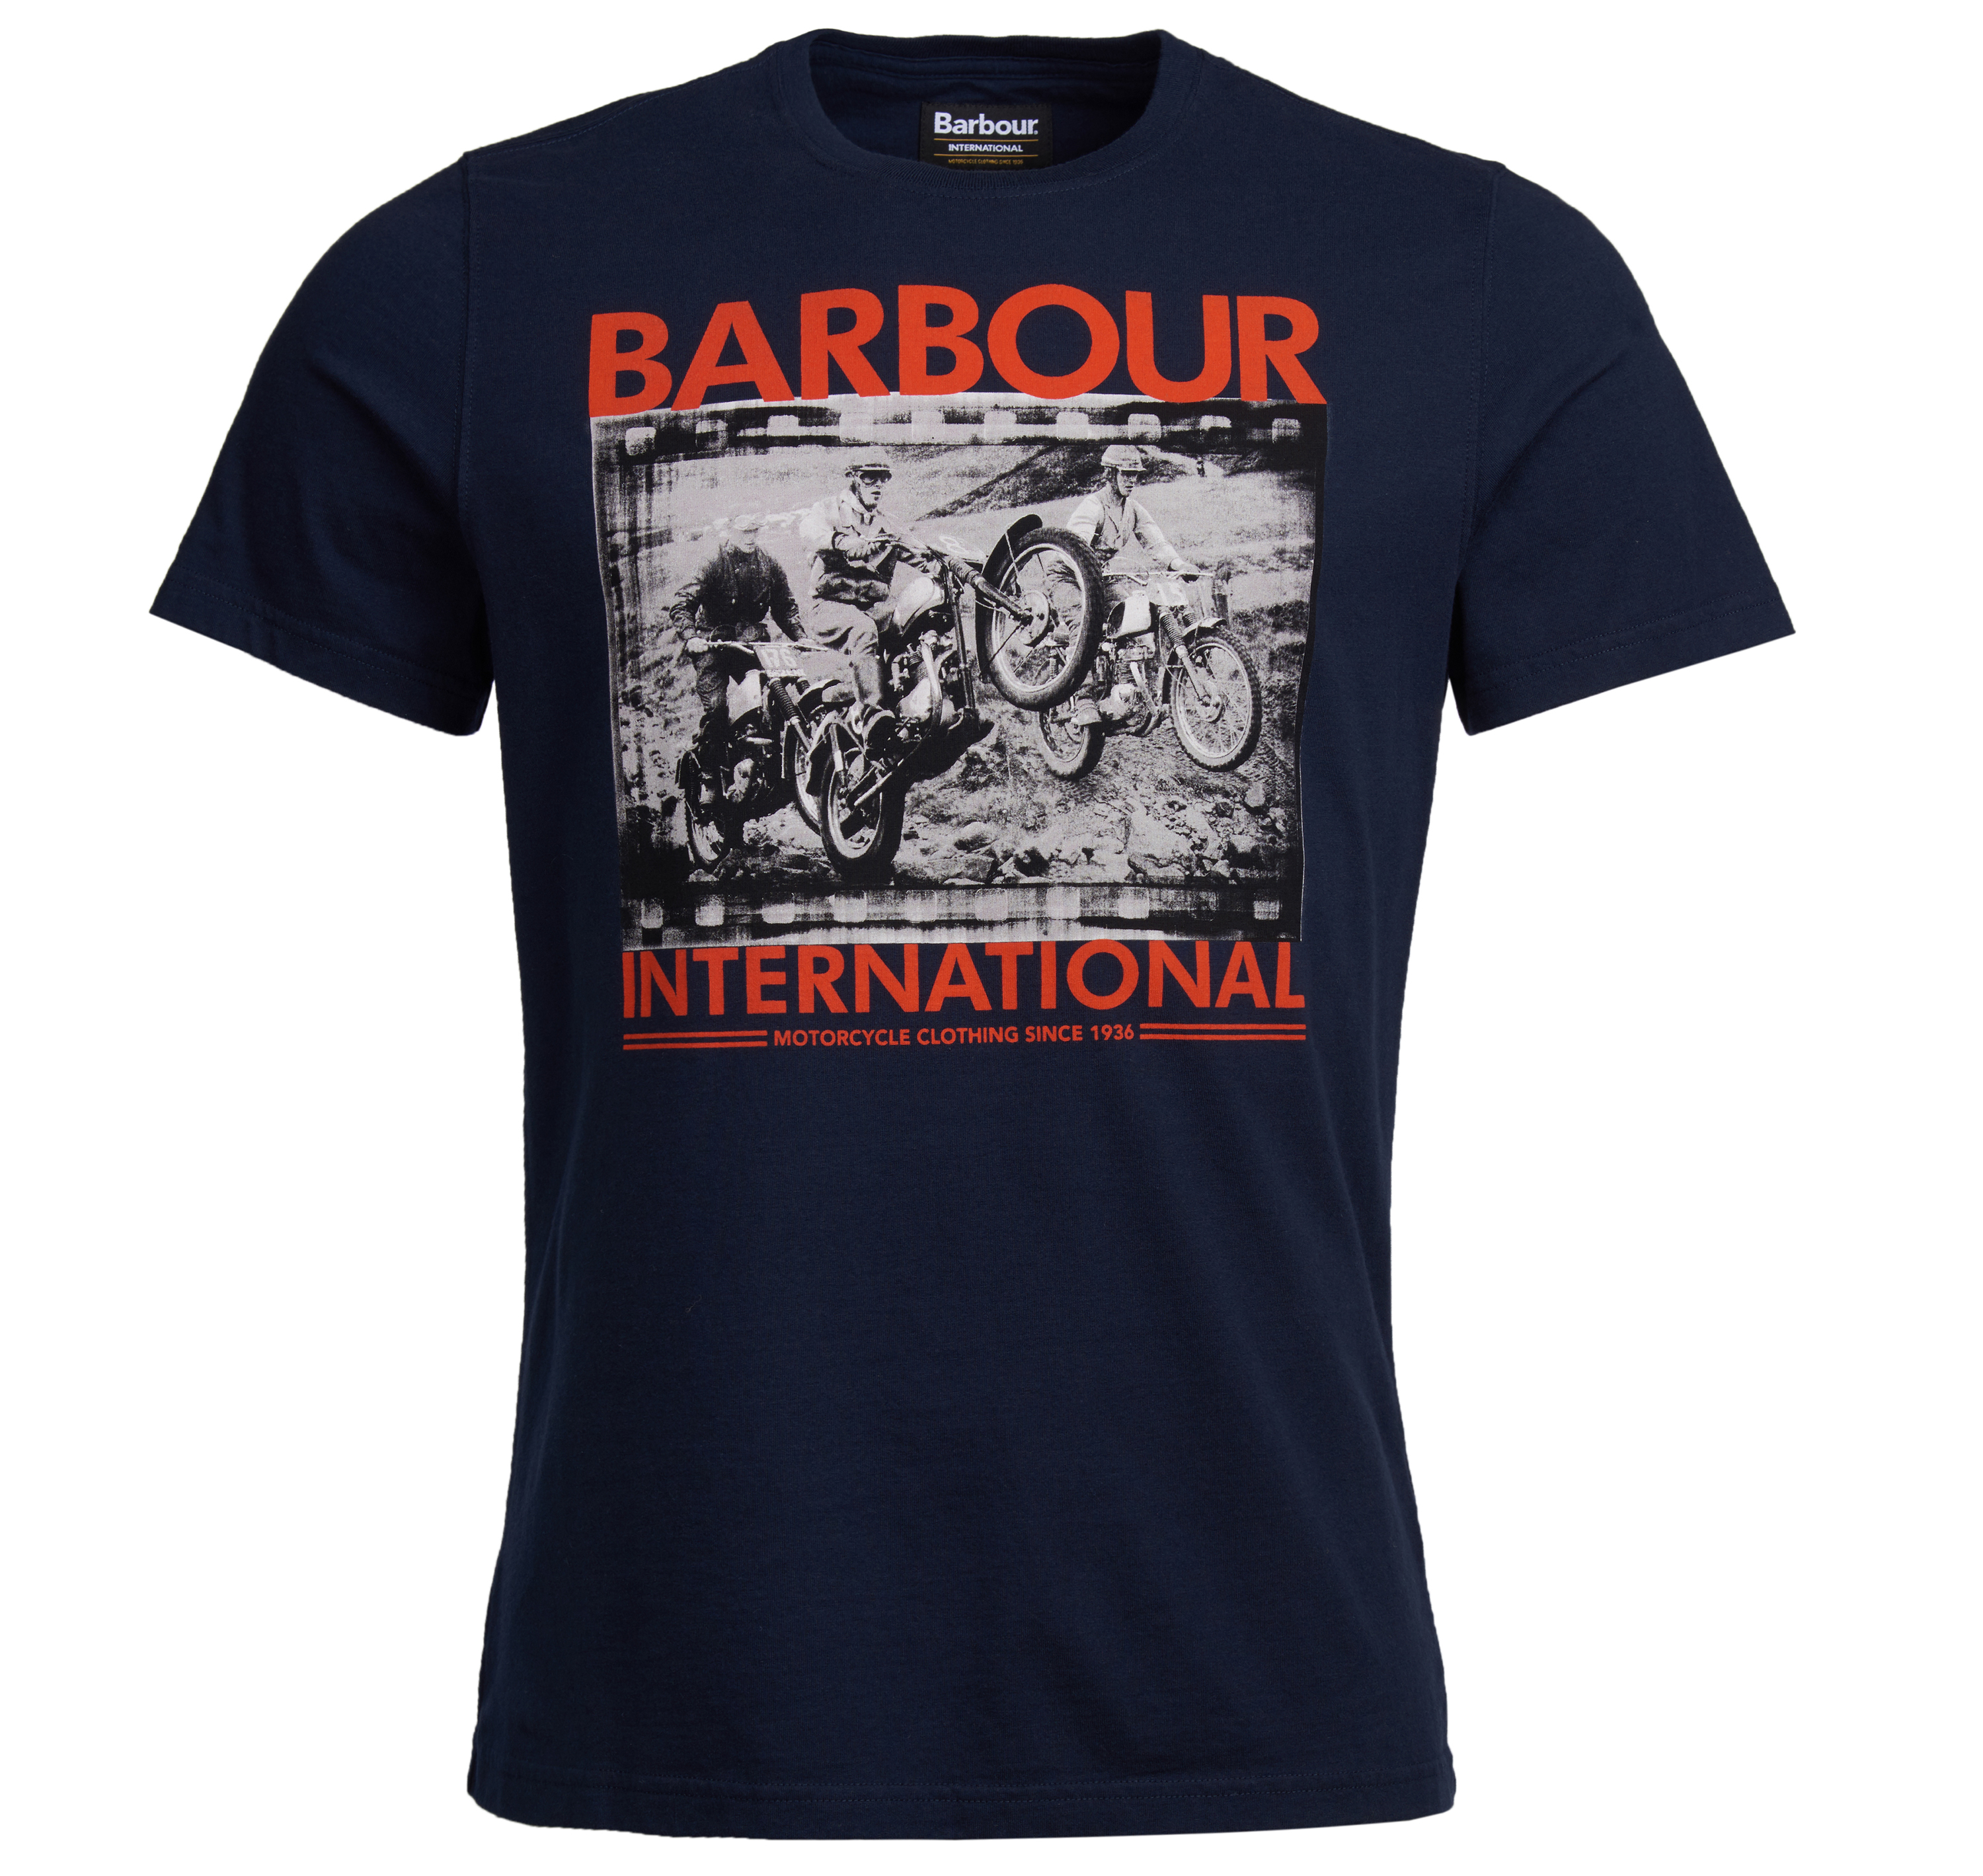 Barbour Archive T-Shirt Barbour International